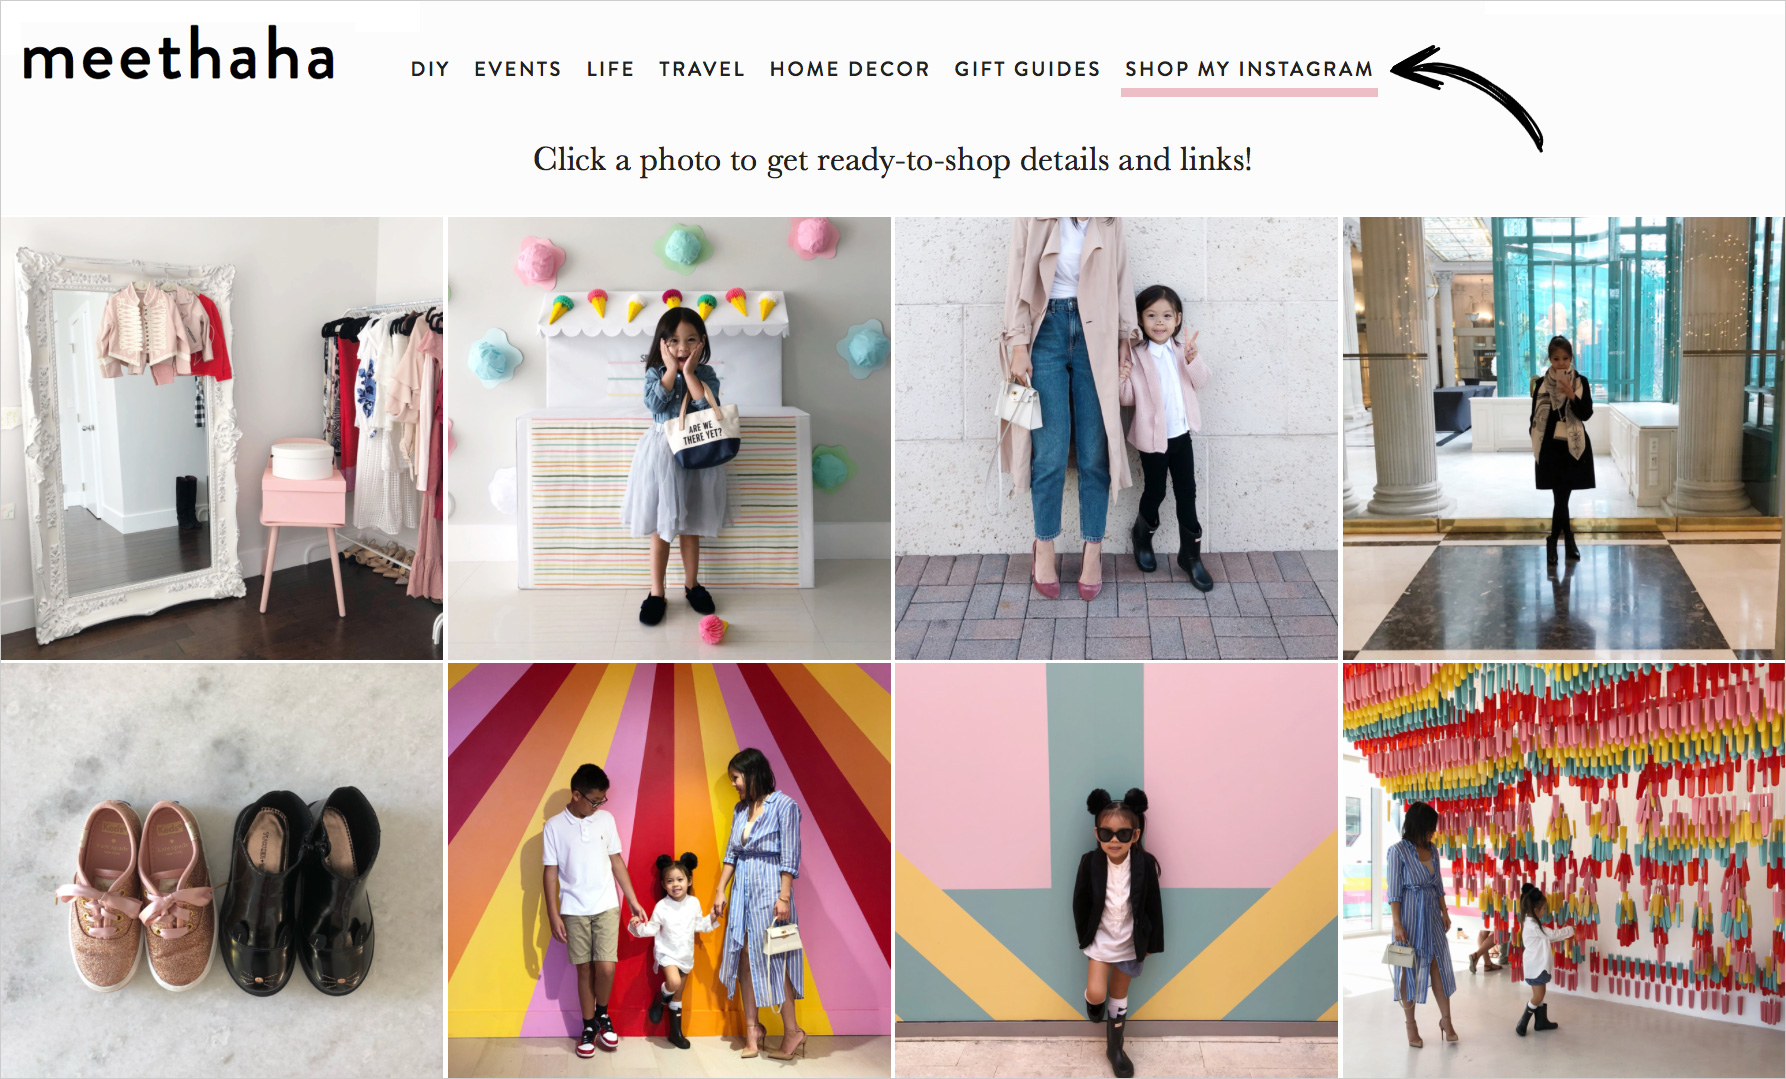 Five Easy Ways To Drive Traffic & Sales From Instagram - PLANOLY Blog - Embed